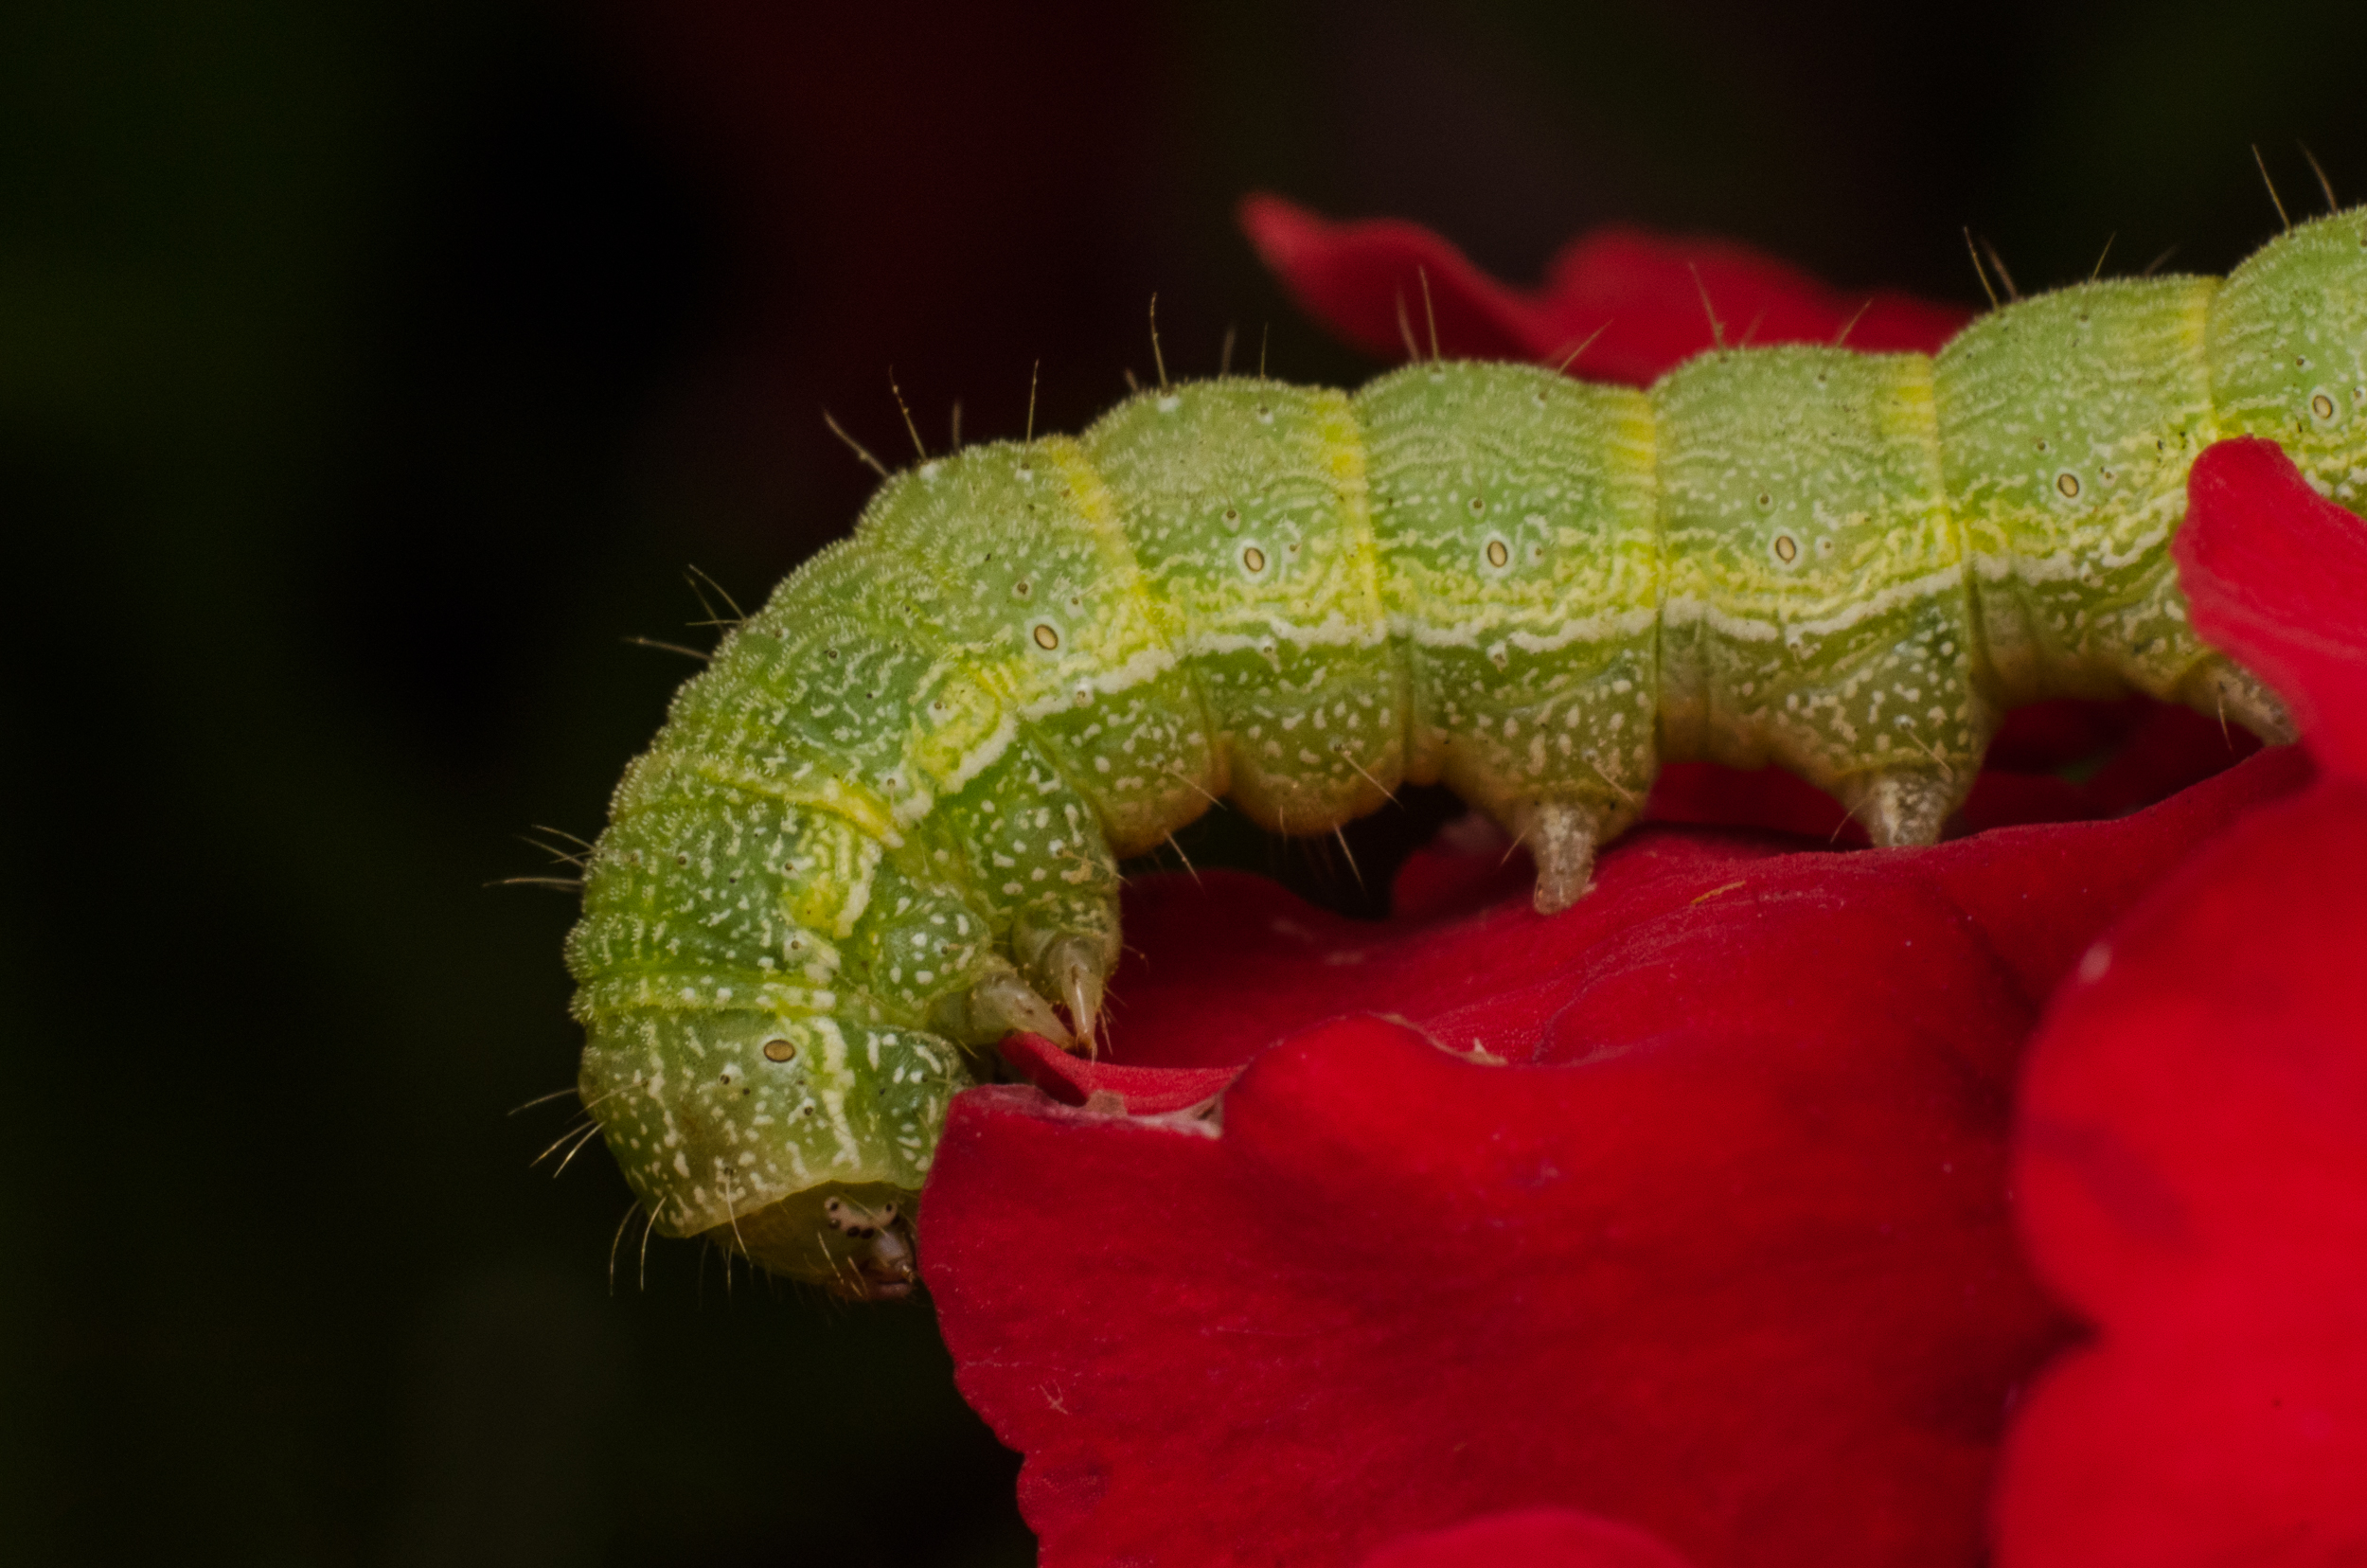 Caterpillar #3  Nikon D7000 ISO 400 50mm + 42mm extension  f/22 1/2500 sec.